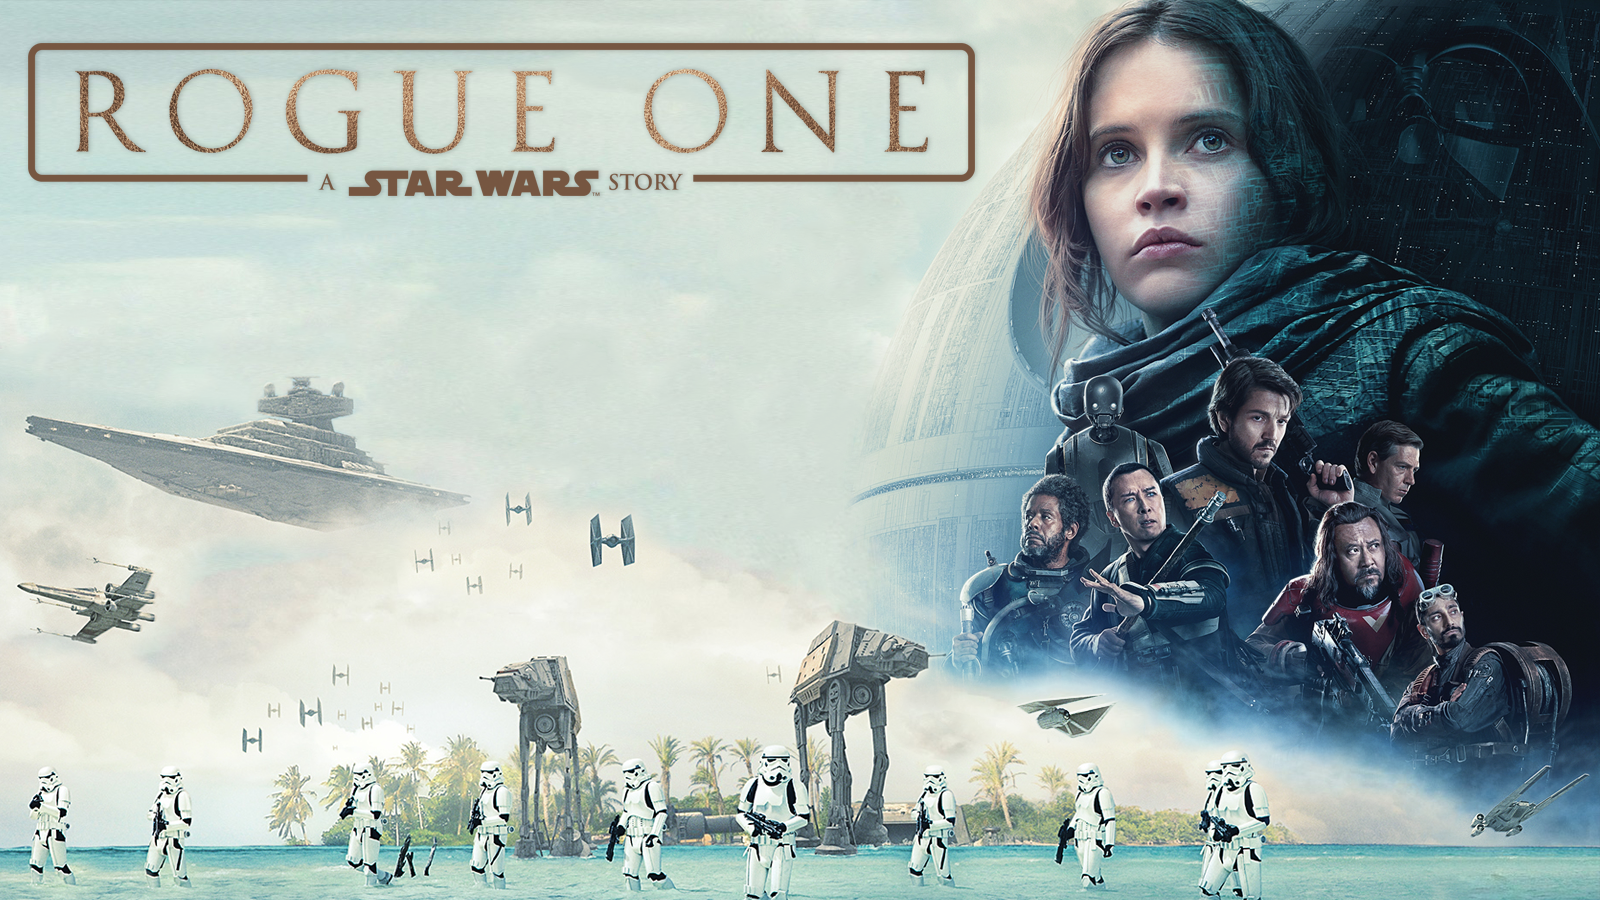 Rogue One Movie Poster with Beach